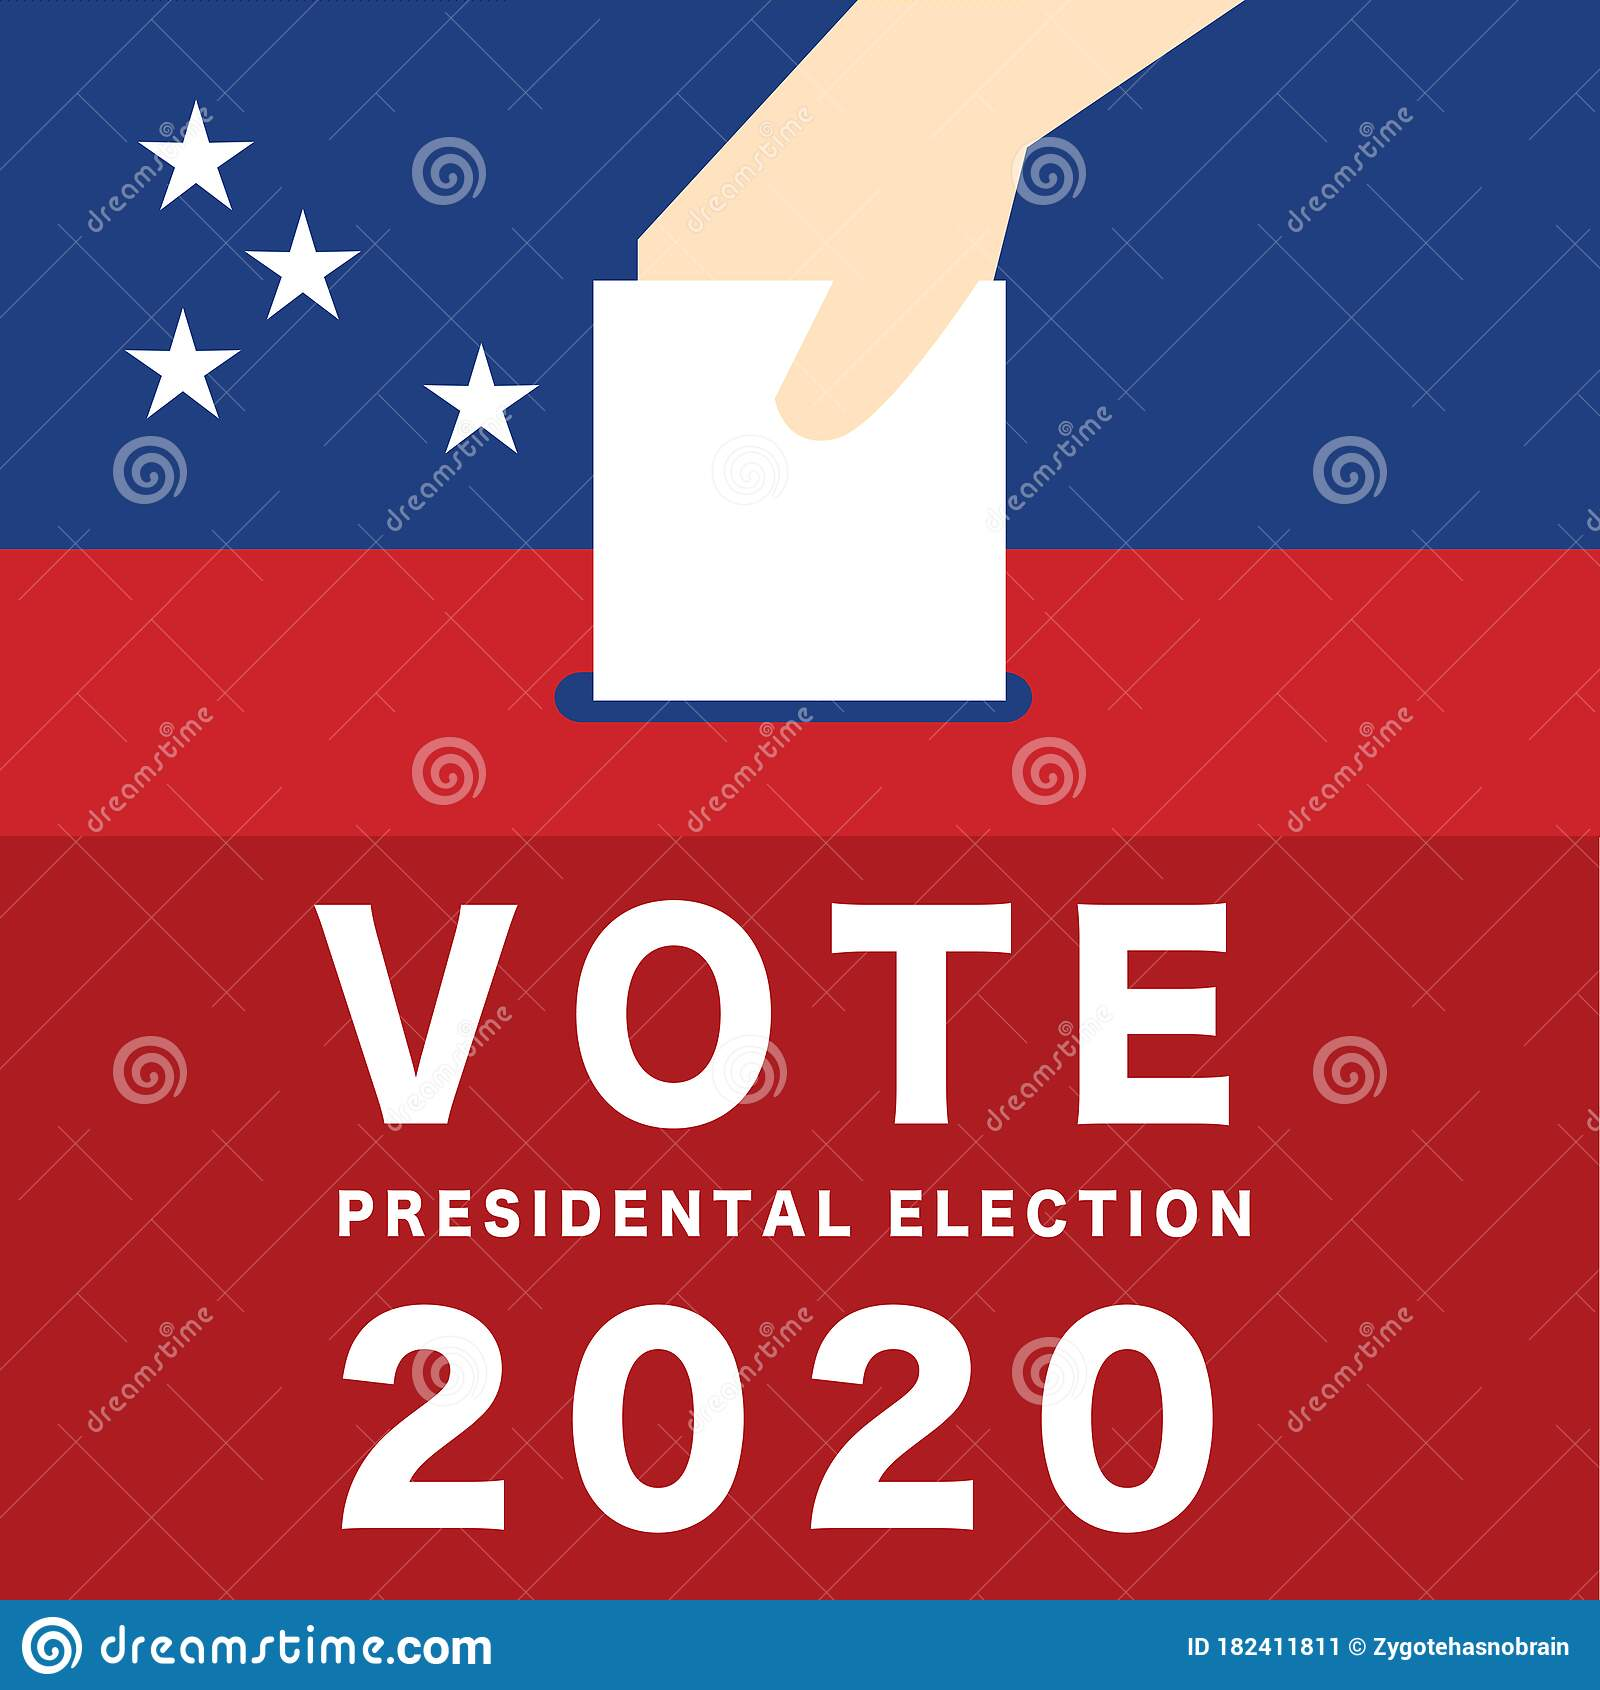 Hand Putting Voting Paper In The Ballot Box Usa Presidential Election 2020 Vector Stock Vector Illustration Of Democrat Candidate 182411811